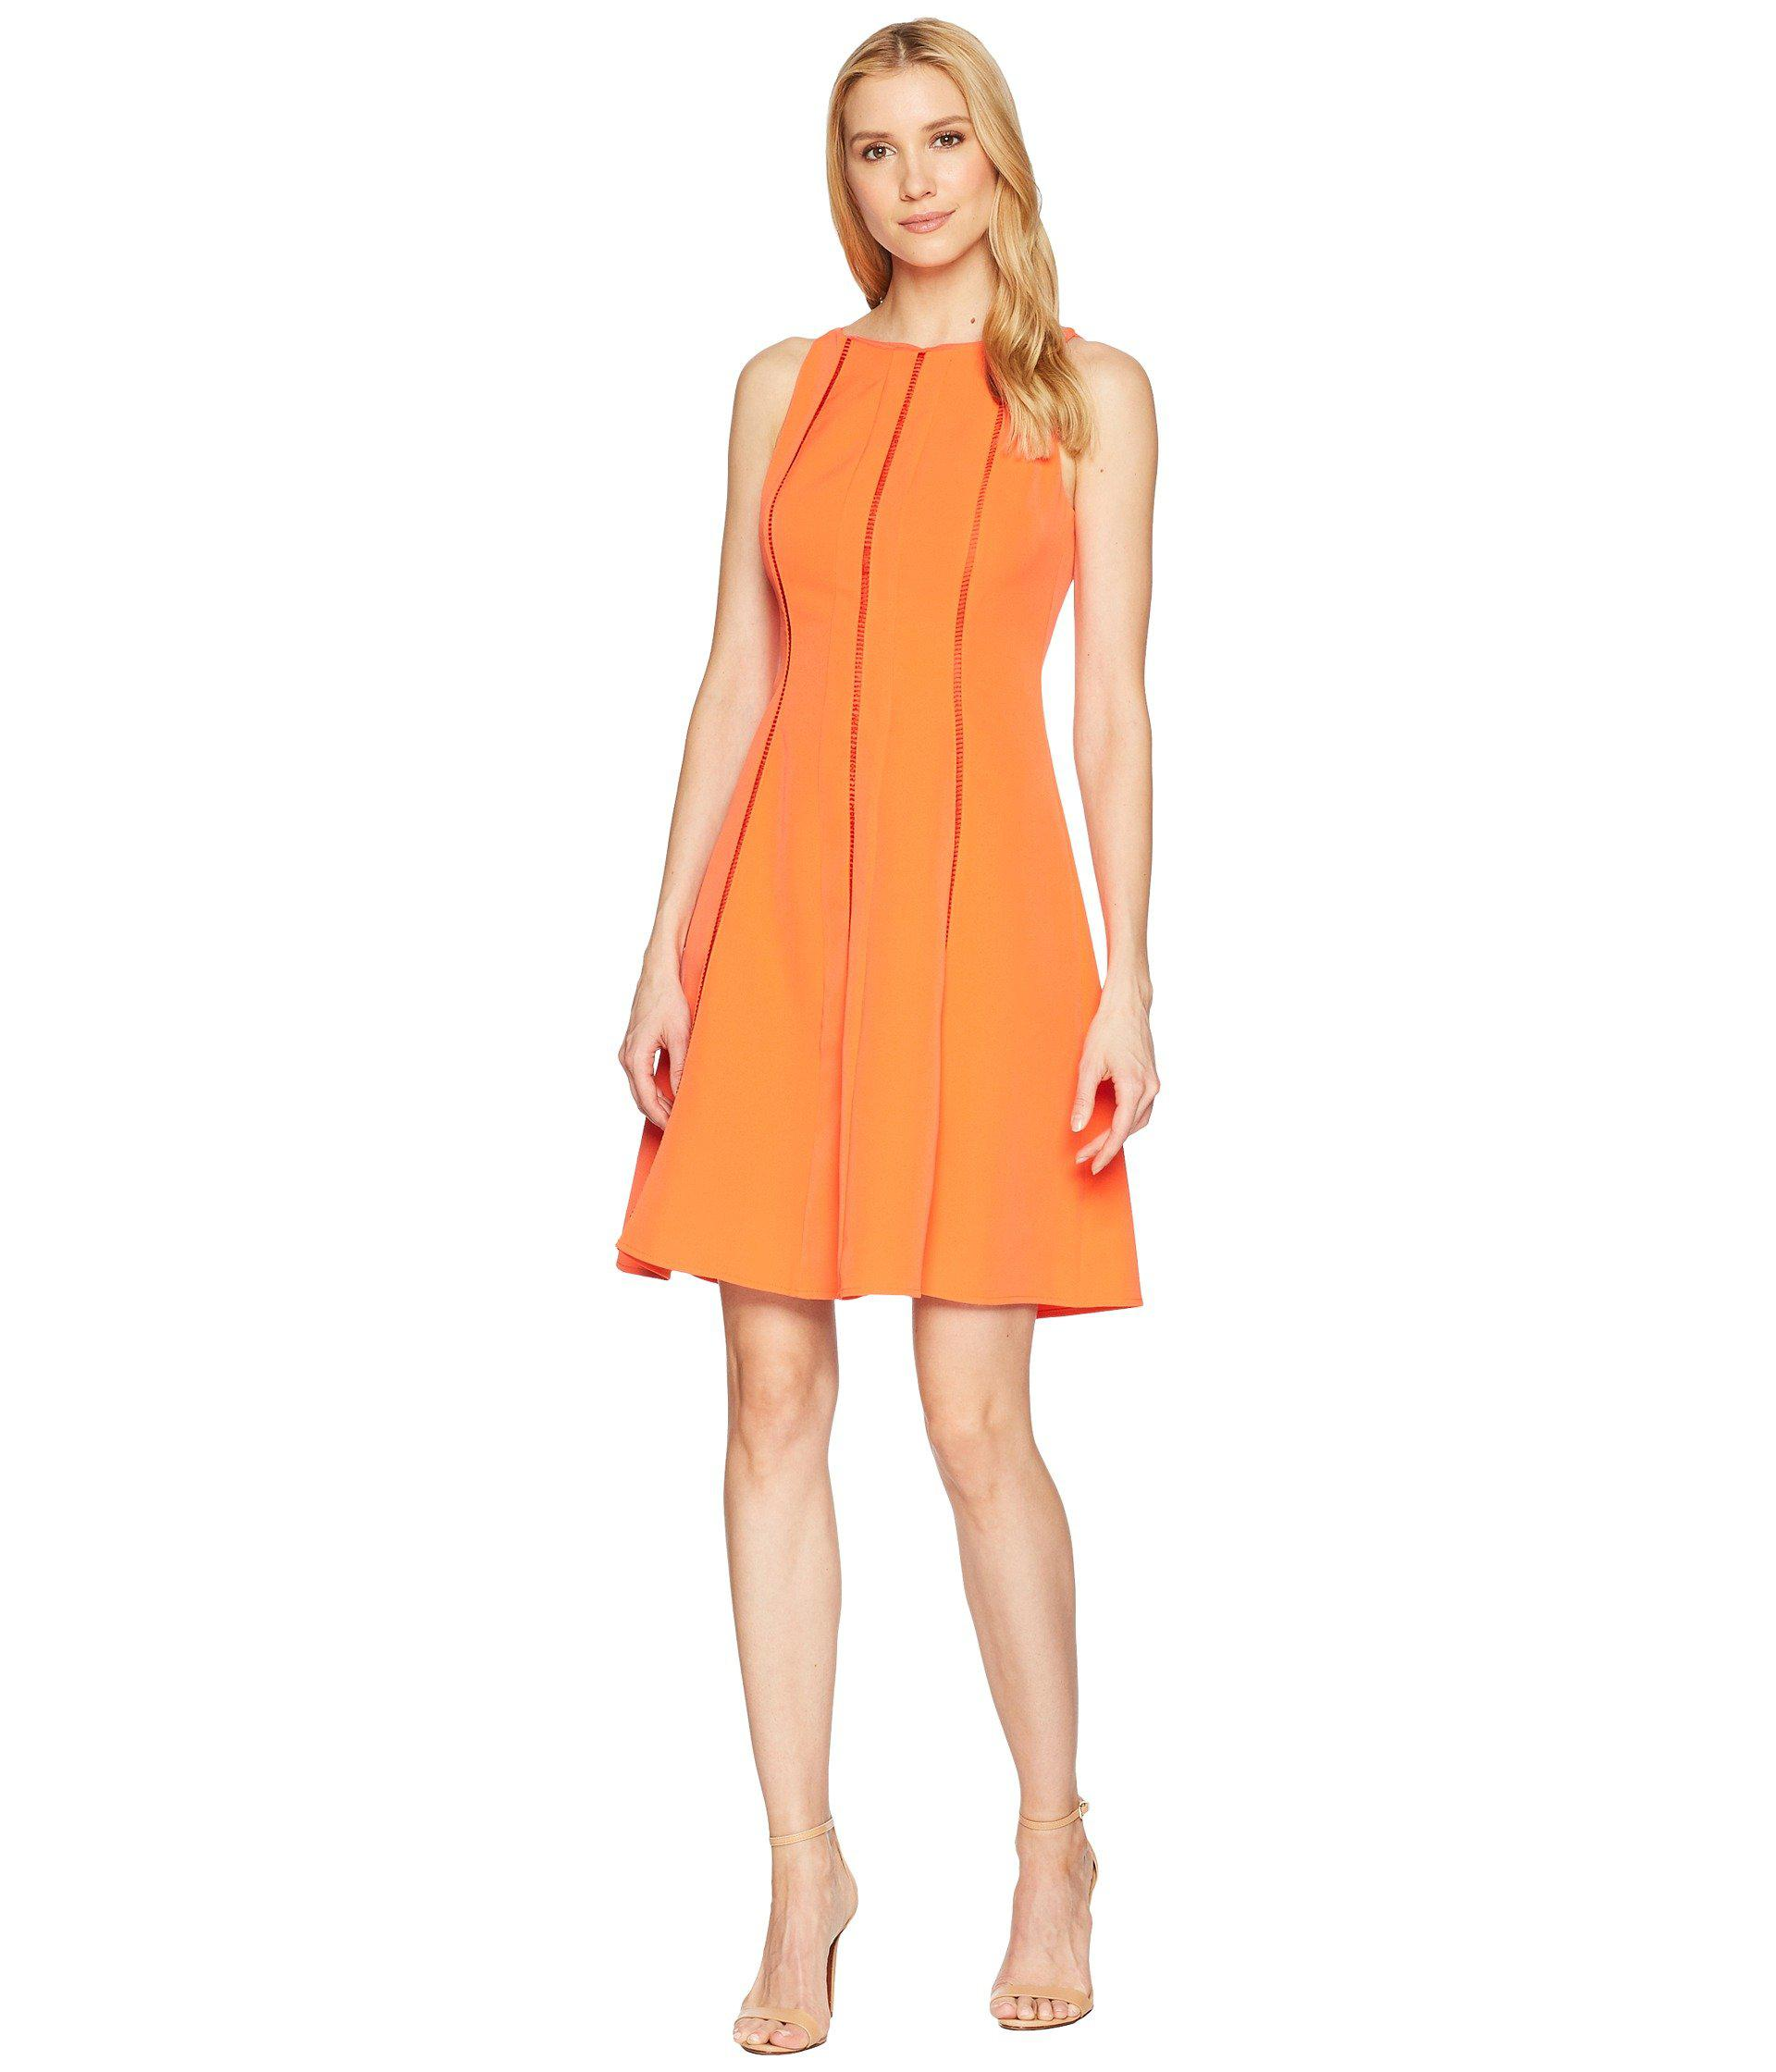 34c84f412e683 Lyst - Maggy London Dream Crepe Fit   Flare Dress in Orange - Save 49%